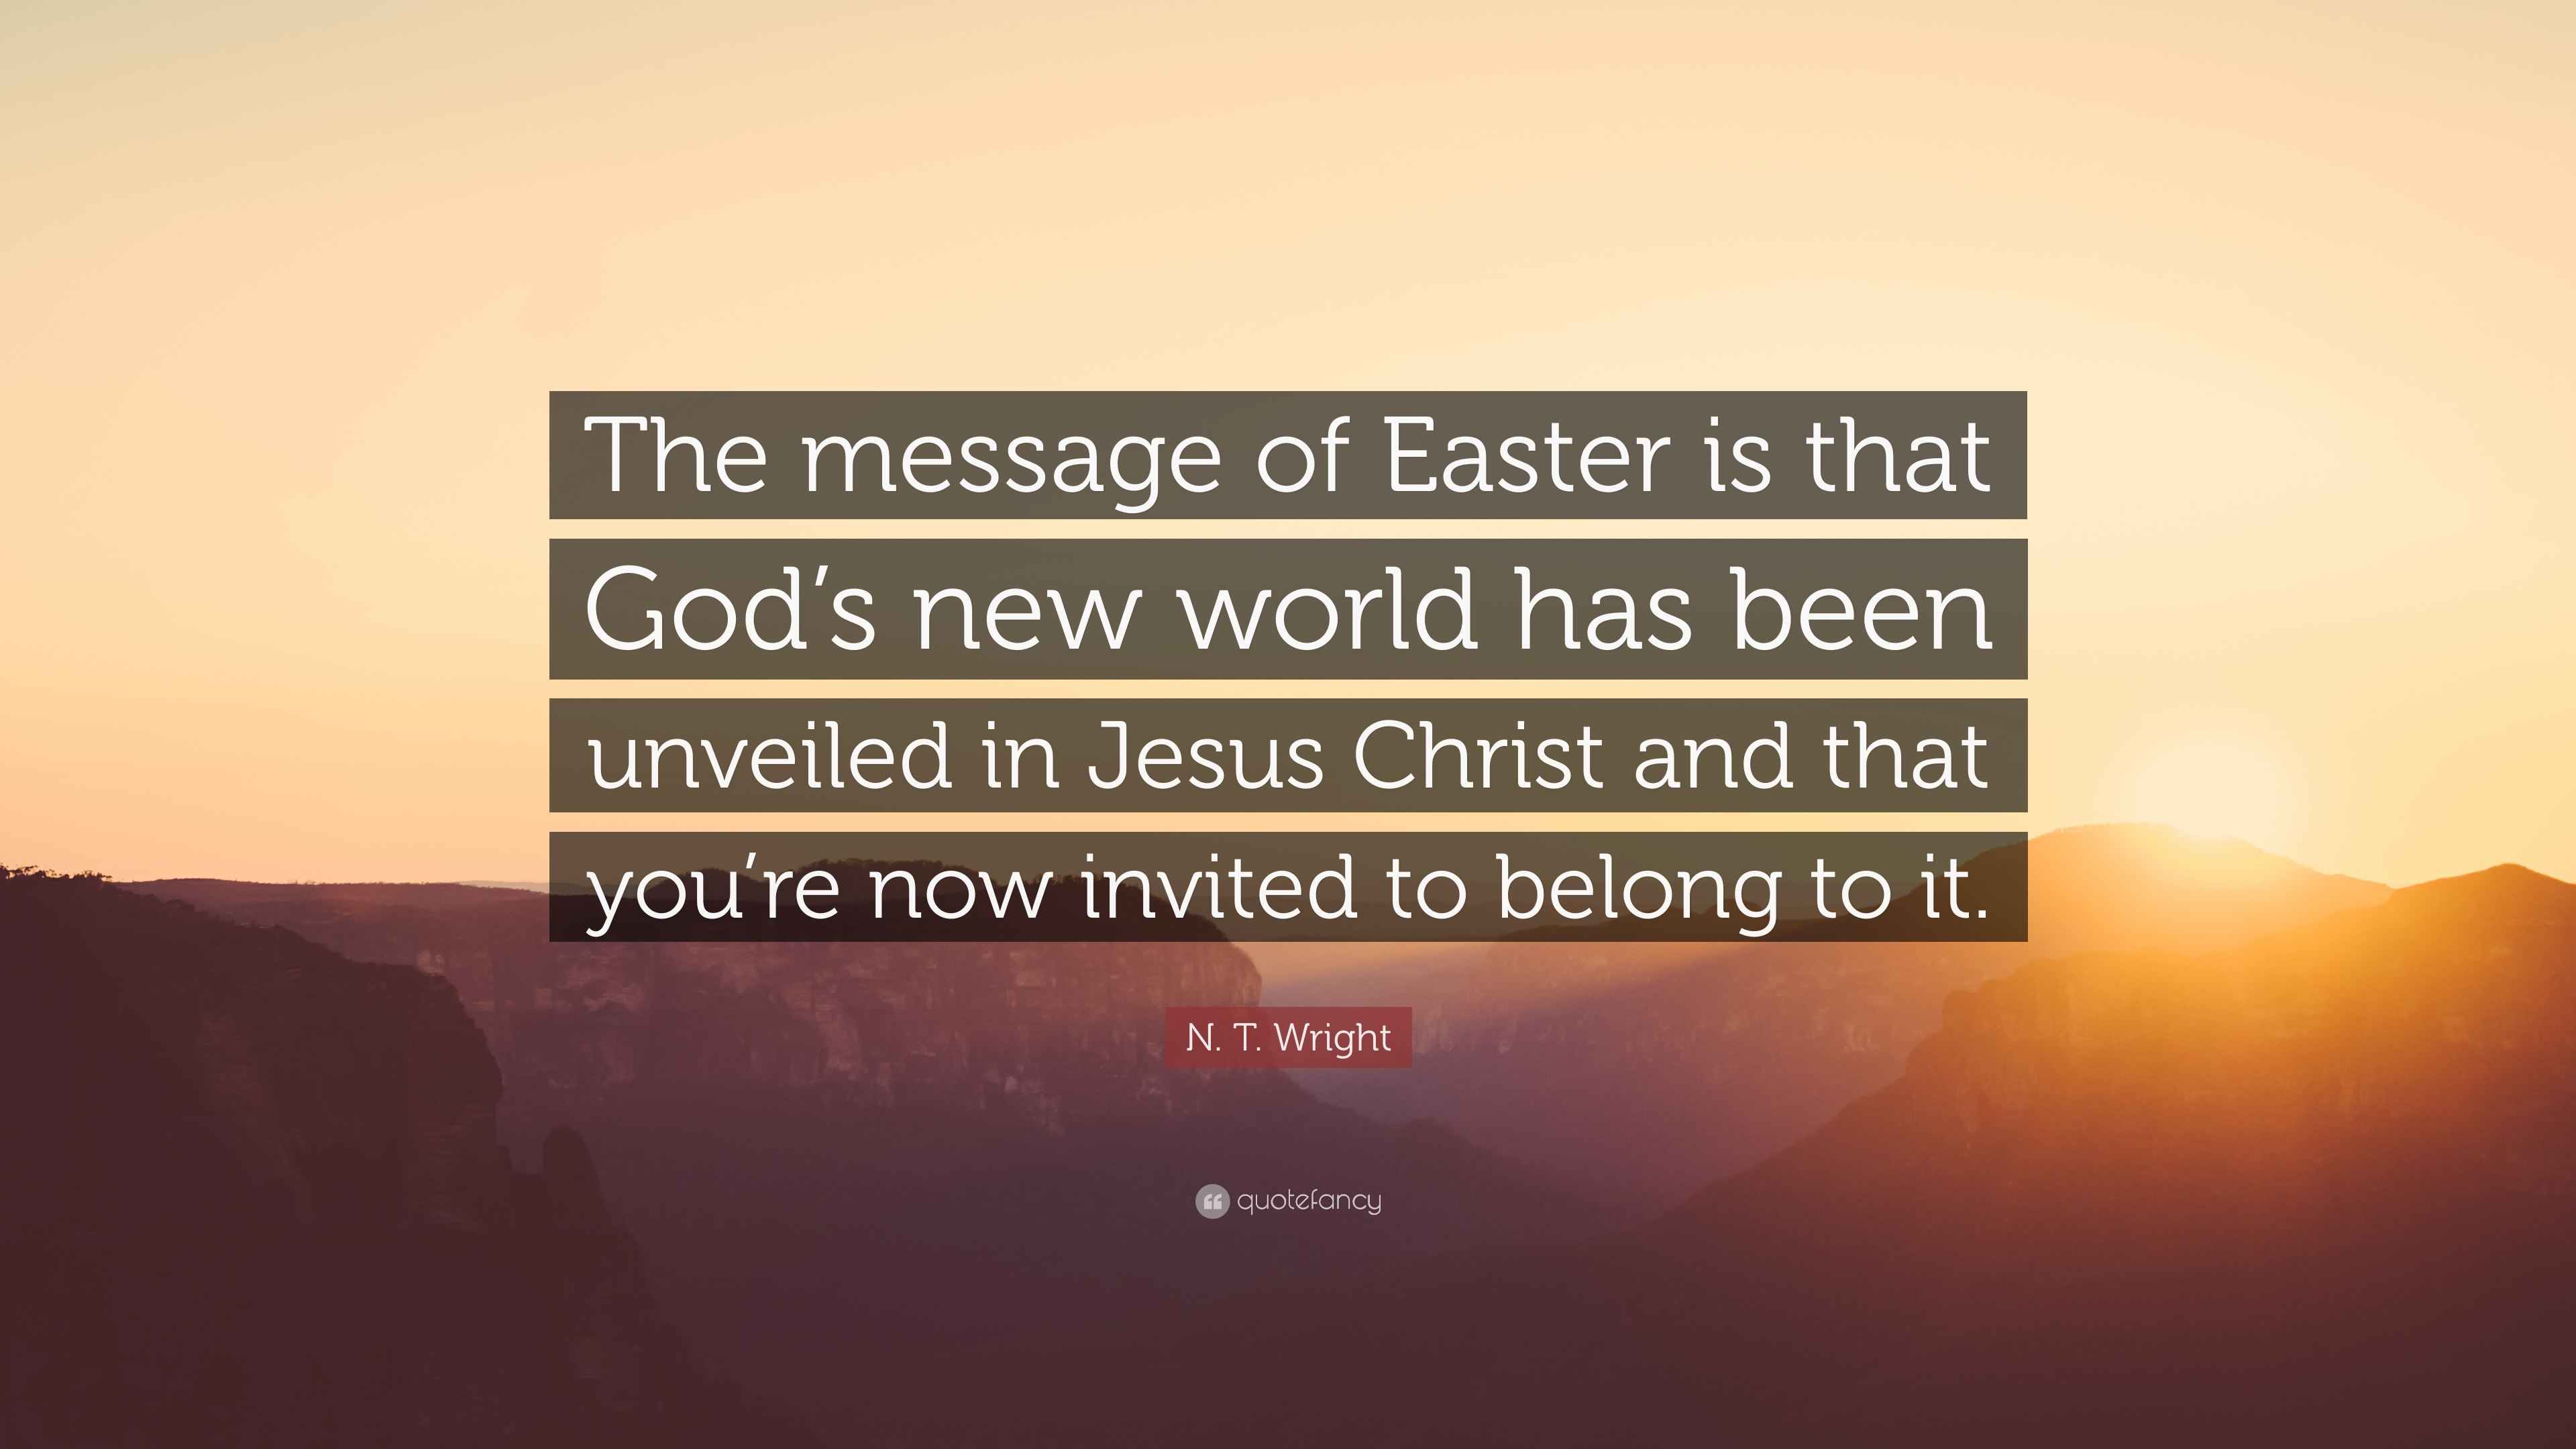 Wallpapers Of Jesus Christ With Quotes N T Wright Quote The Message Of Easter Is That God S